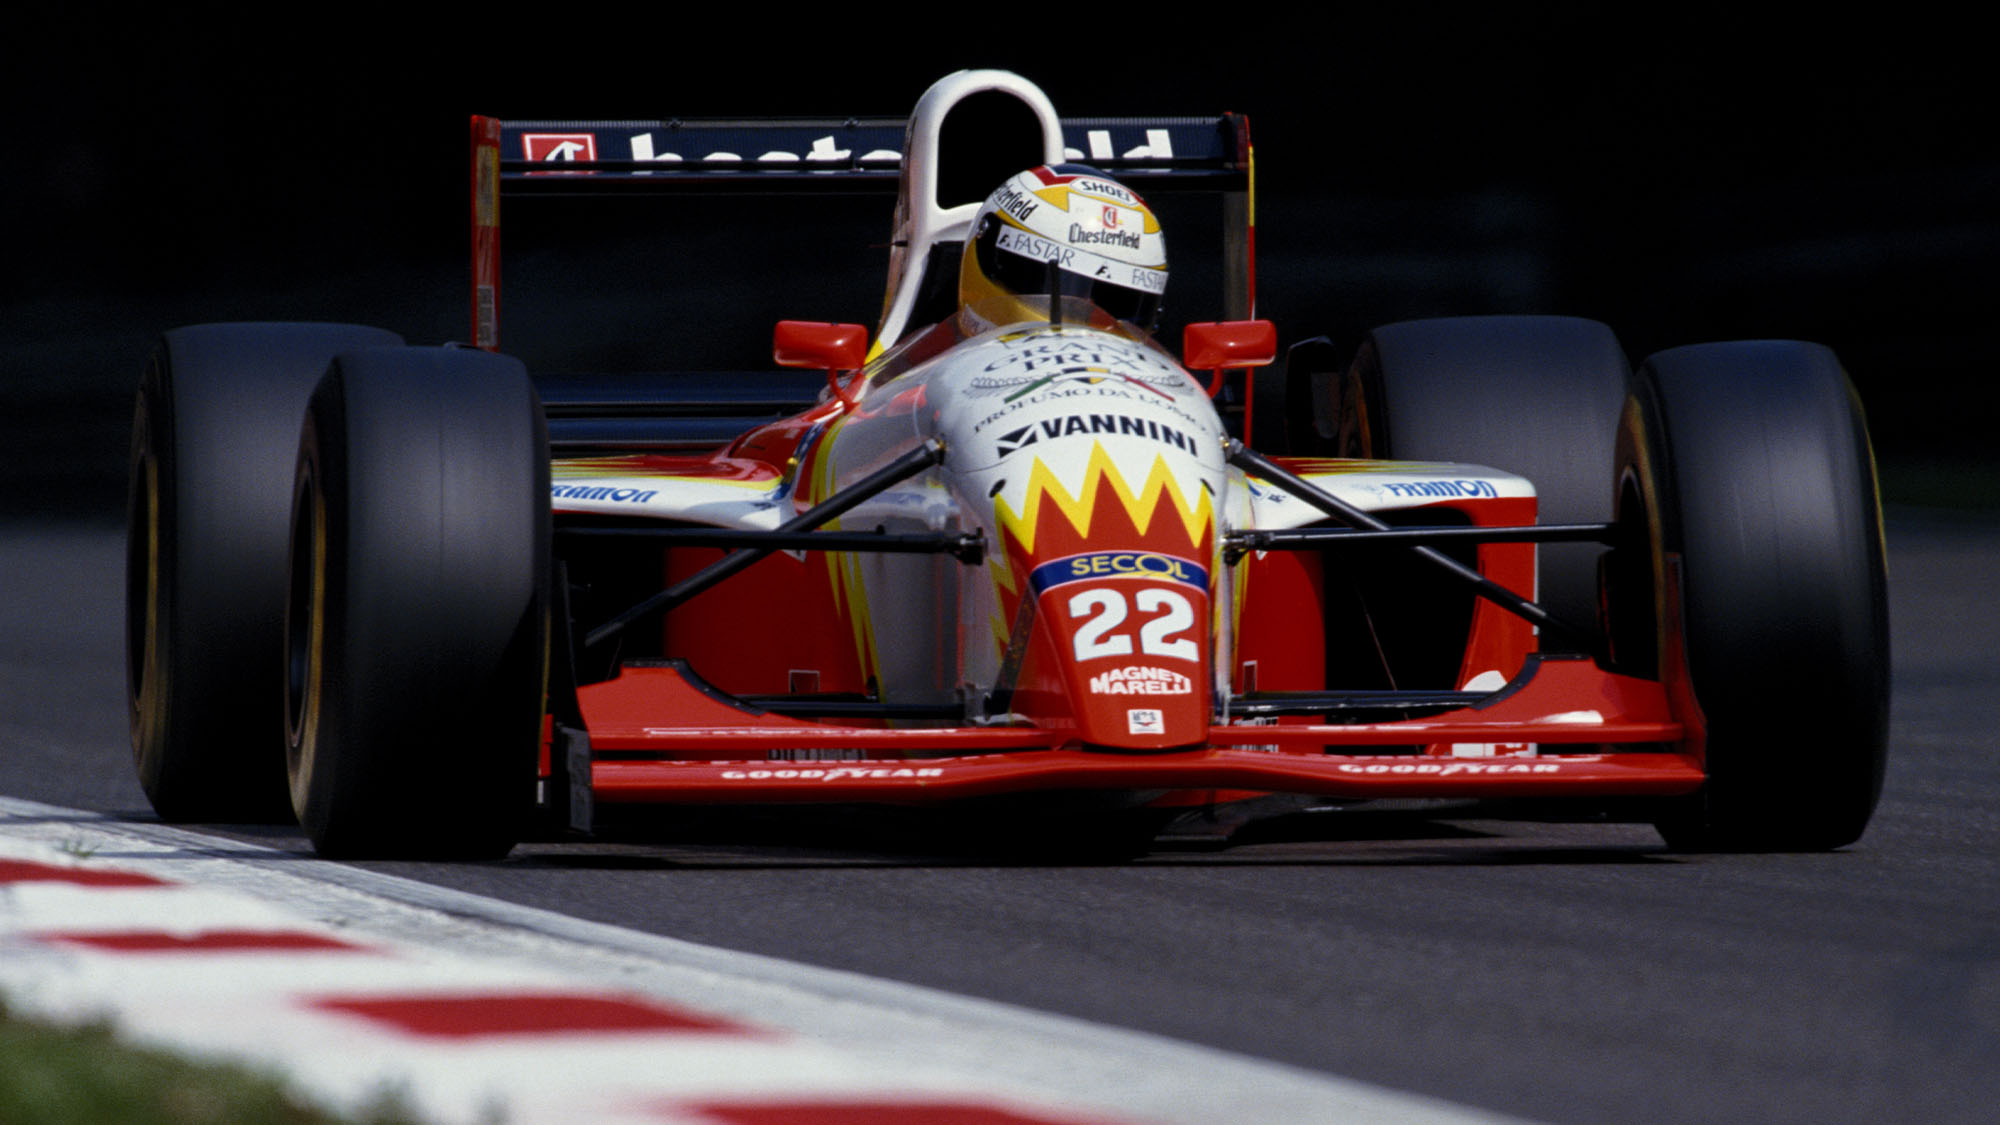 Luca Badoer drives the #22 Lola BMS Scuderia Italia Lola T93/30 Ferrari 3500 during the Italian Grand Prix on 12th September 1993 at the Autodromo Nazionale Monza near Monza, Italy.(Photo by Pascal Rondeau/Getty Images)